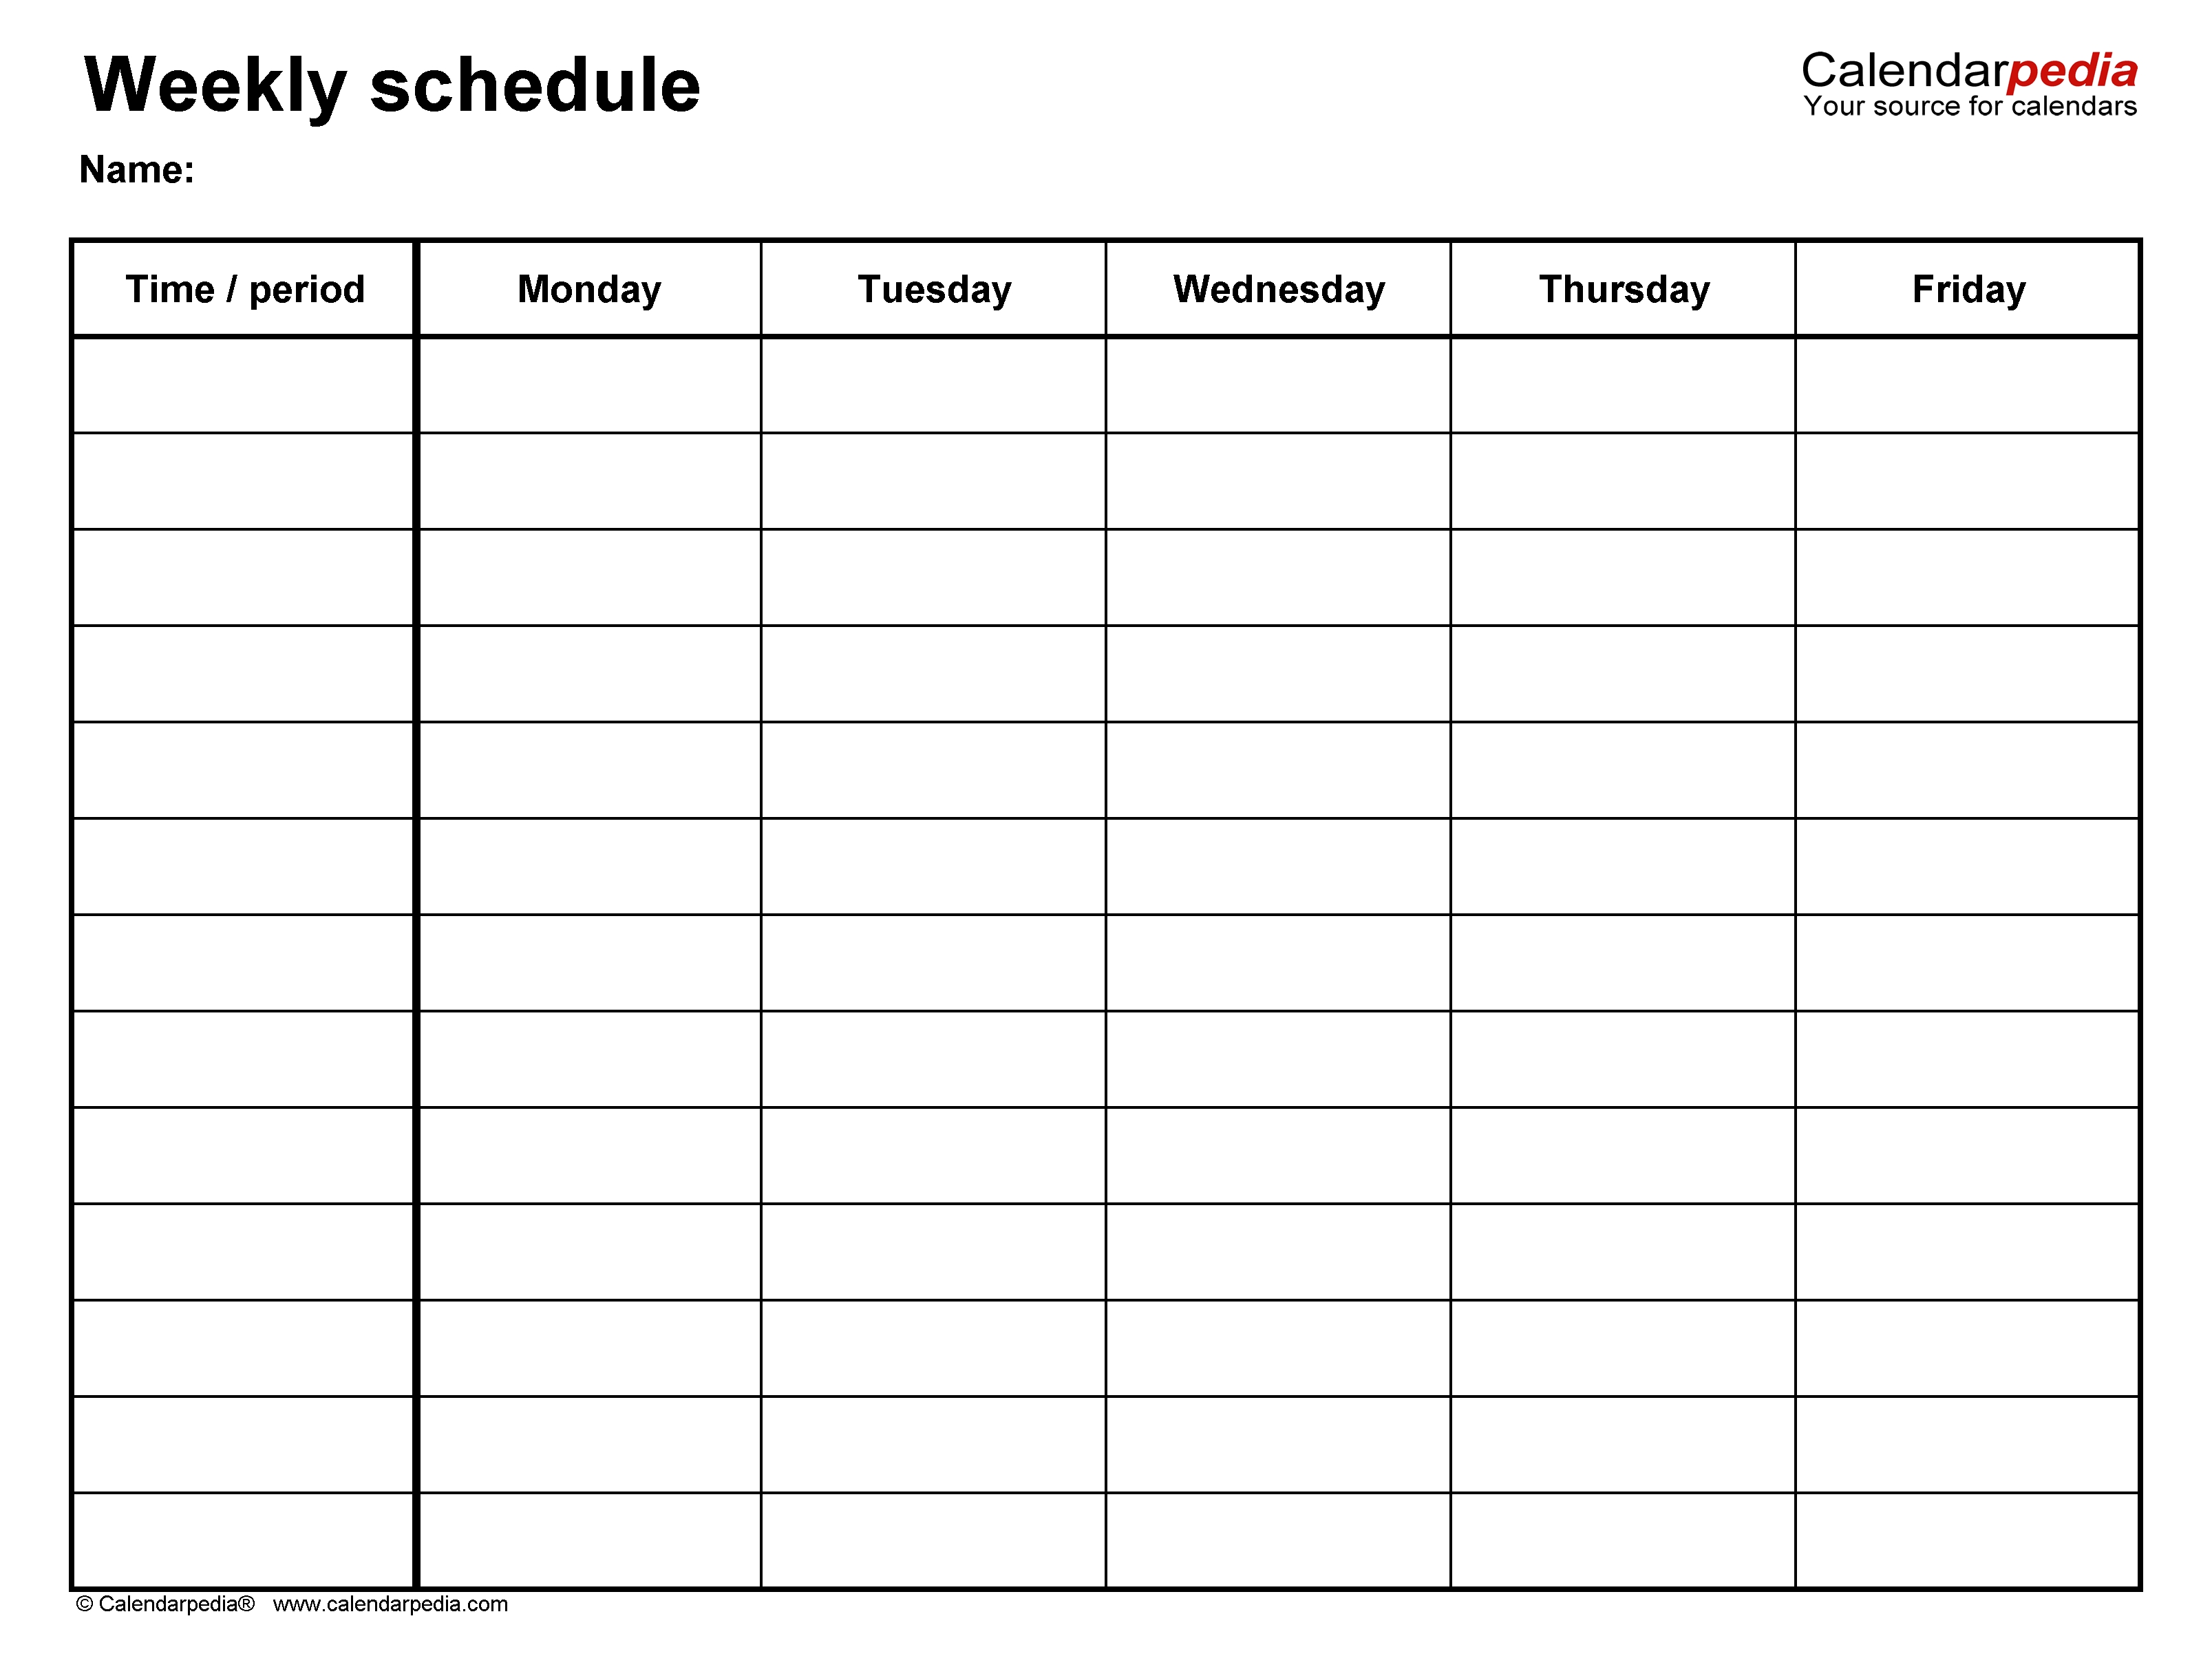 Free Weekly Schedule Templates For Word - 18 Templates-Free Blank Printable Monthly Calendar Monday - Friday